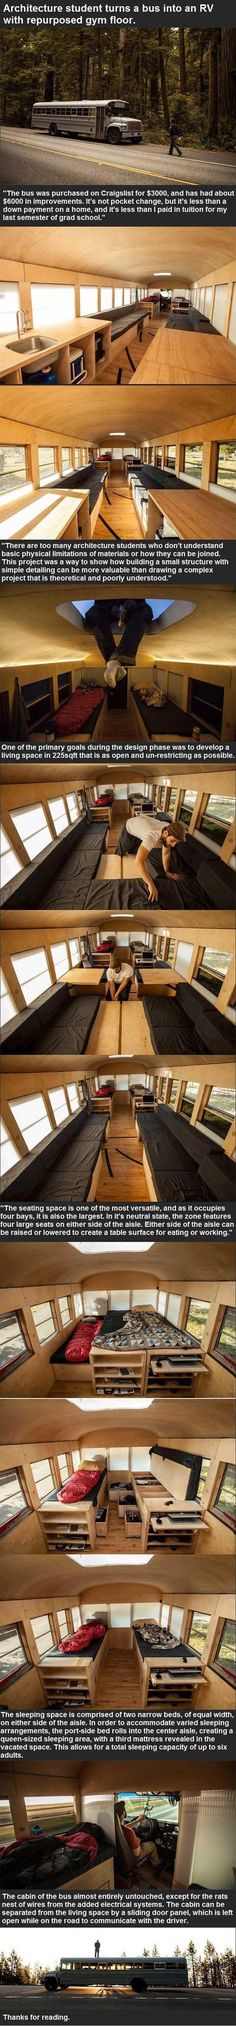 Architect Student Refurbishes An Old Bus Using A Gym Floor  12 Pics